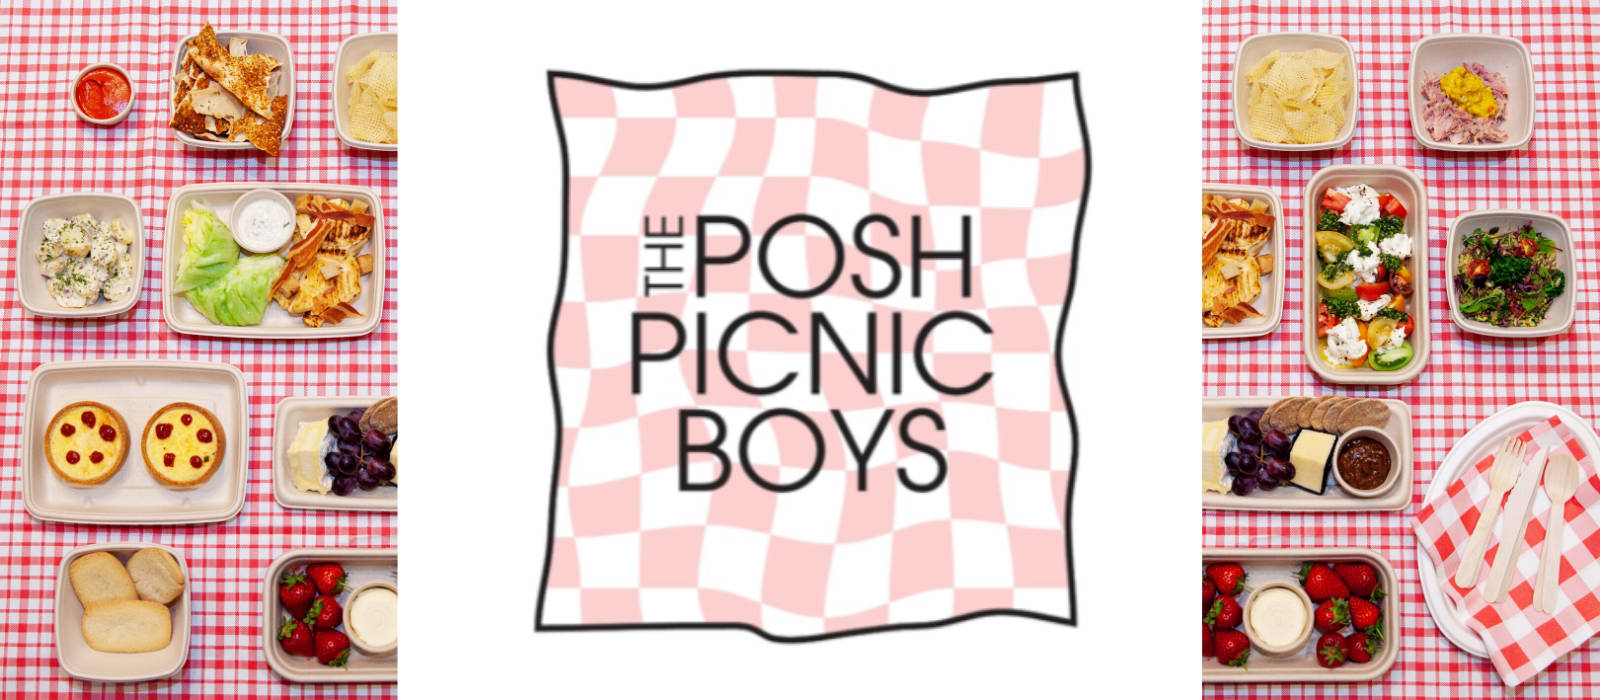 The Posh Picnic Boys